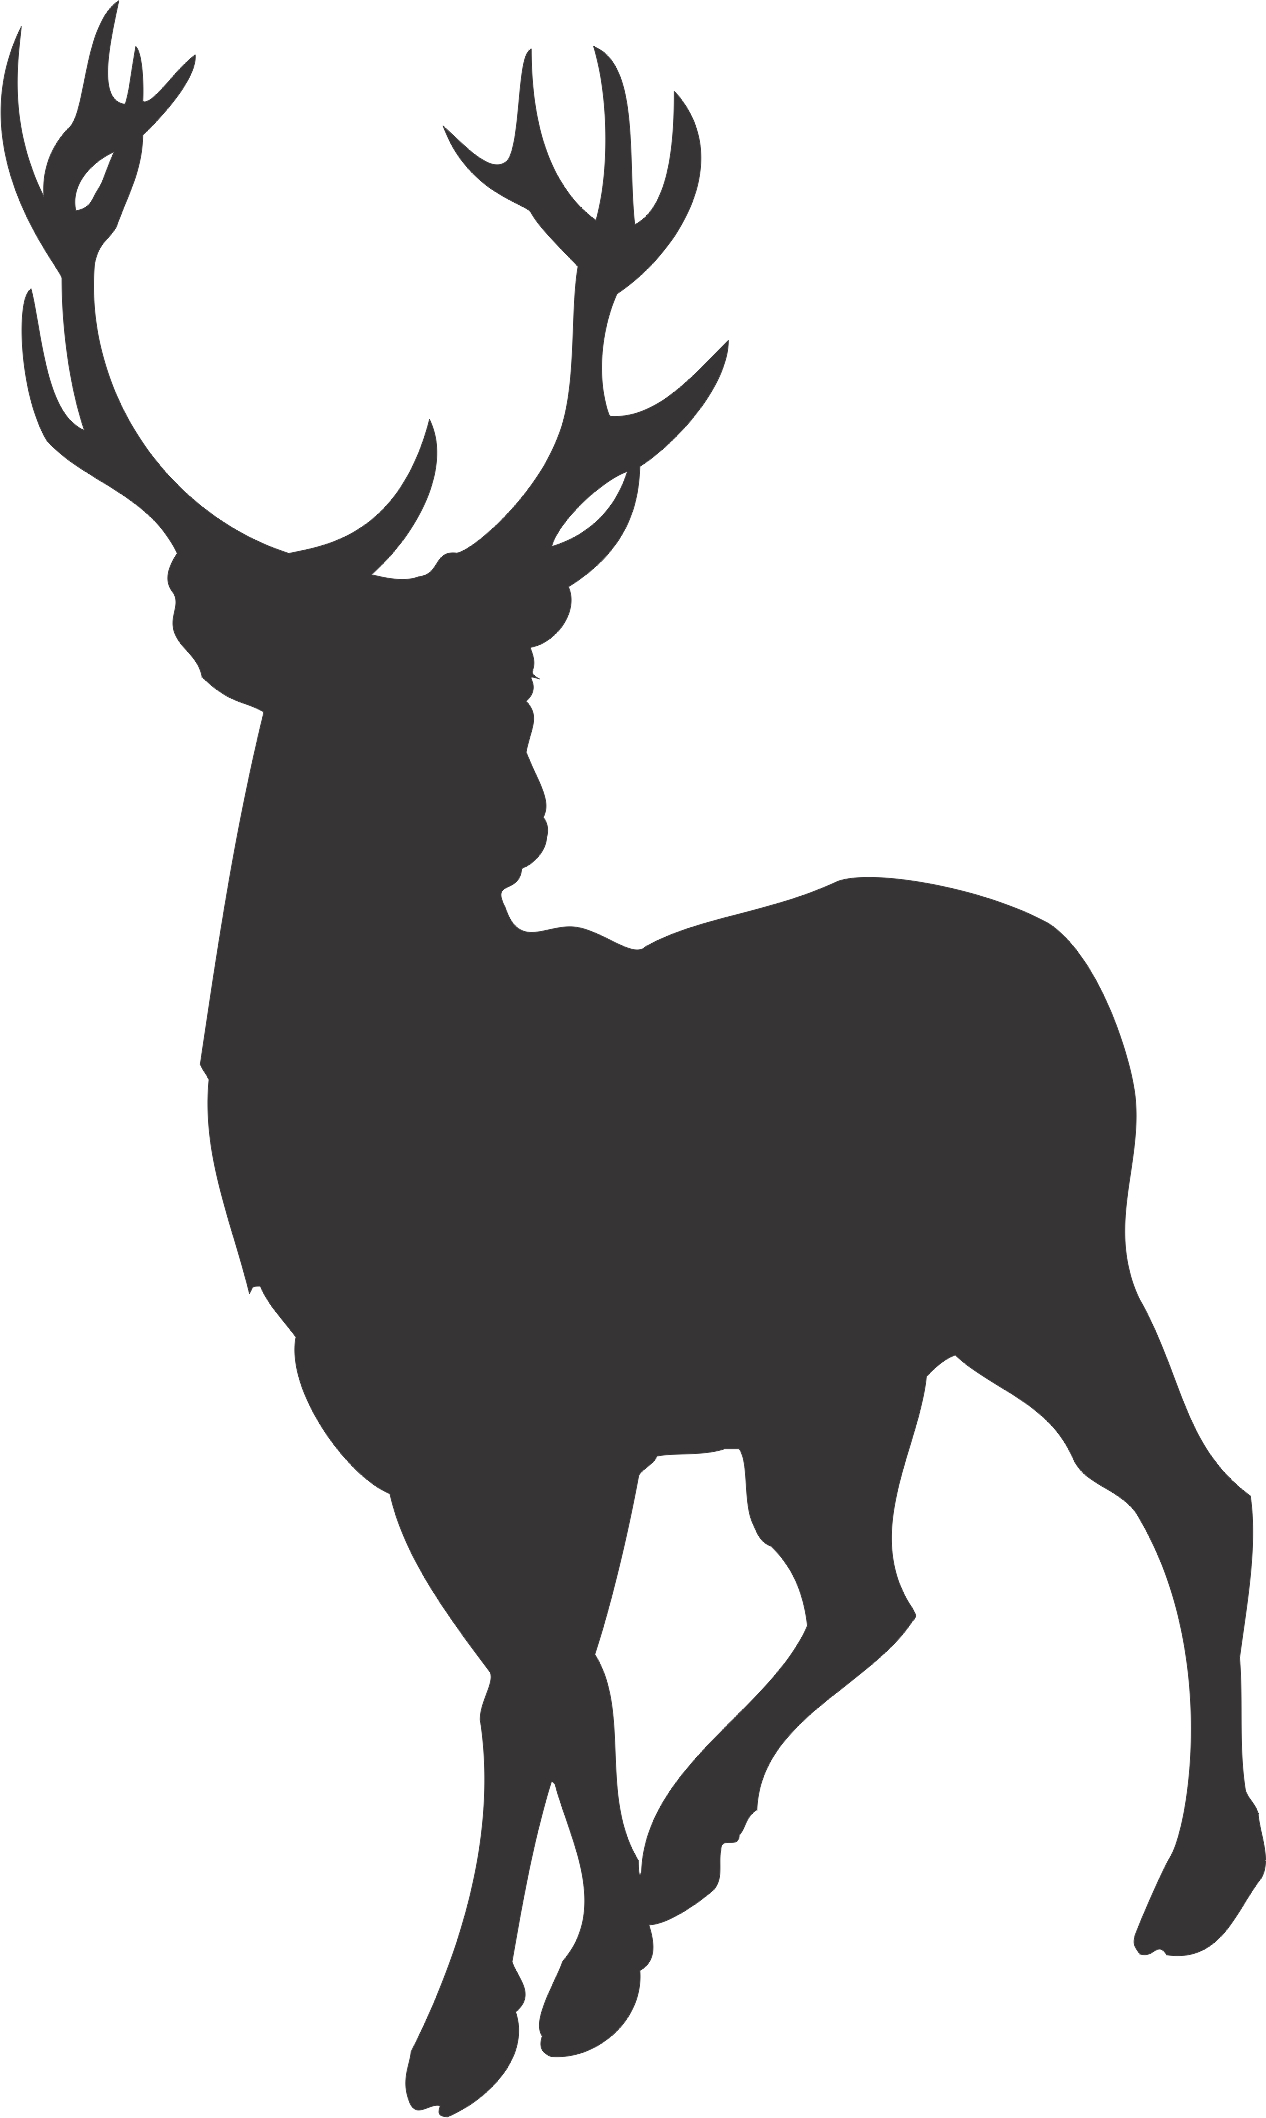 Deer clipart silhouette image black and white library Free Free Deer Silhouette, Download Free Clip Art, Free Clip Art on ... image black and white library